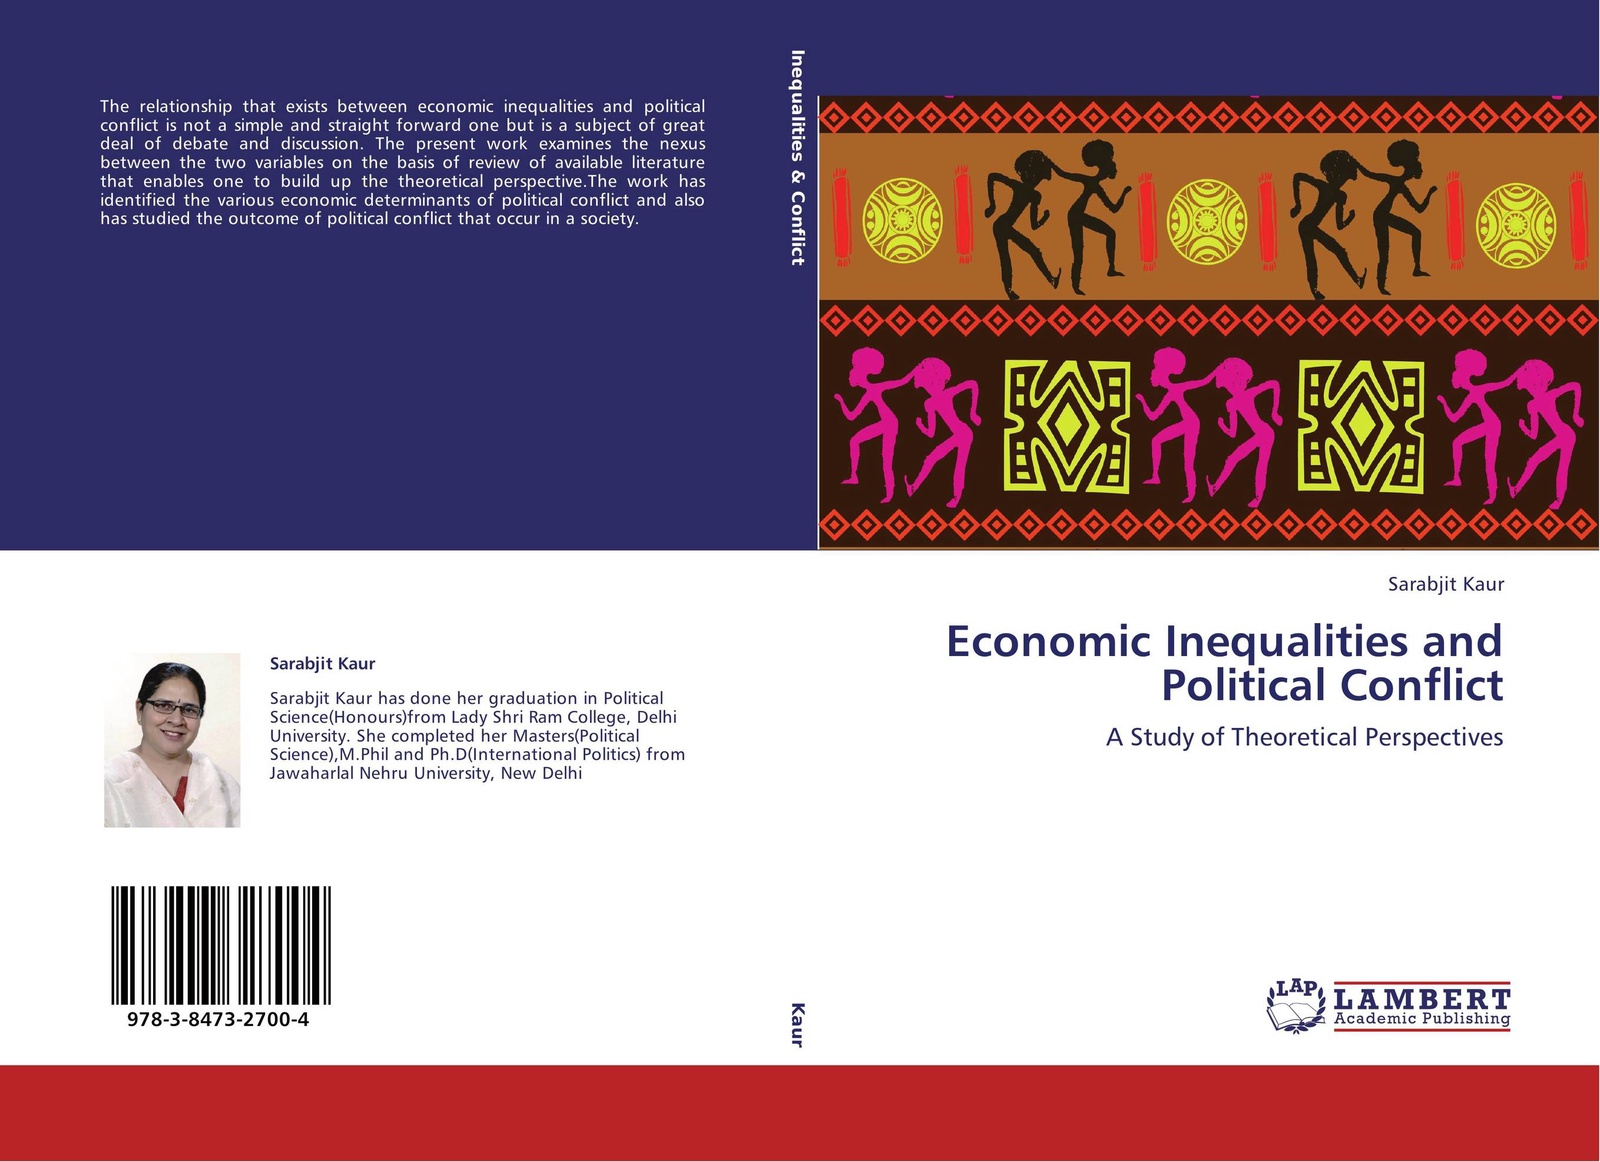 Sarabjit Kaur Economic Inequalities and Political Conflict alexey szydlowski ferguson model of the racial political conflict constitutional and legal aspects